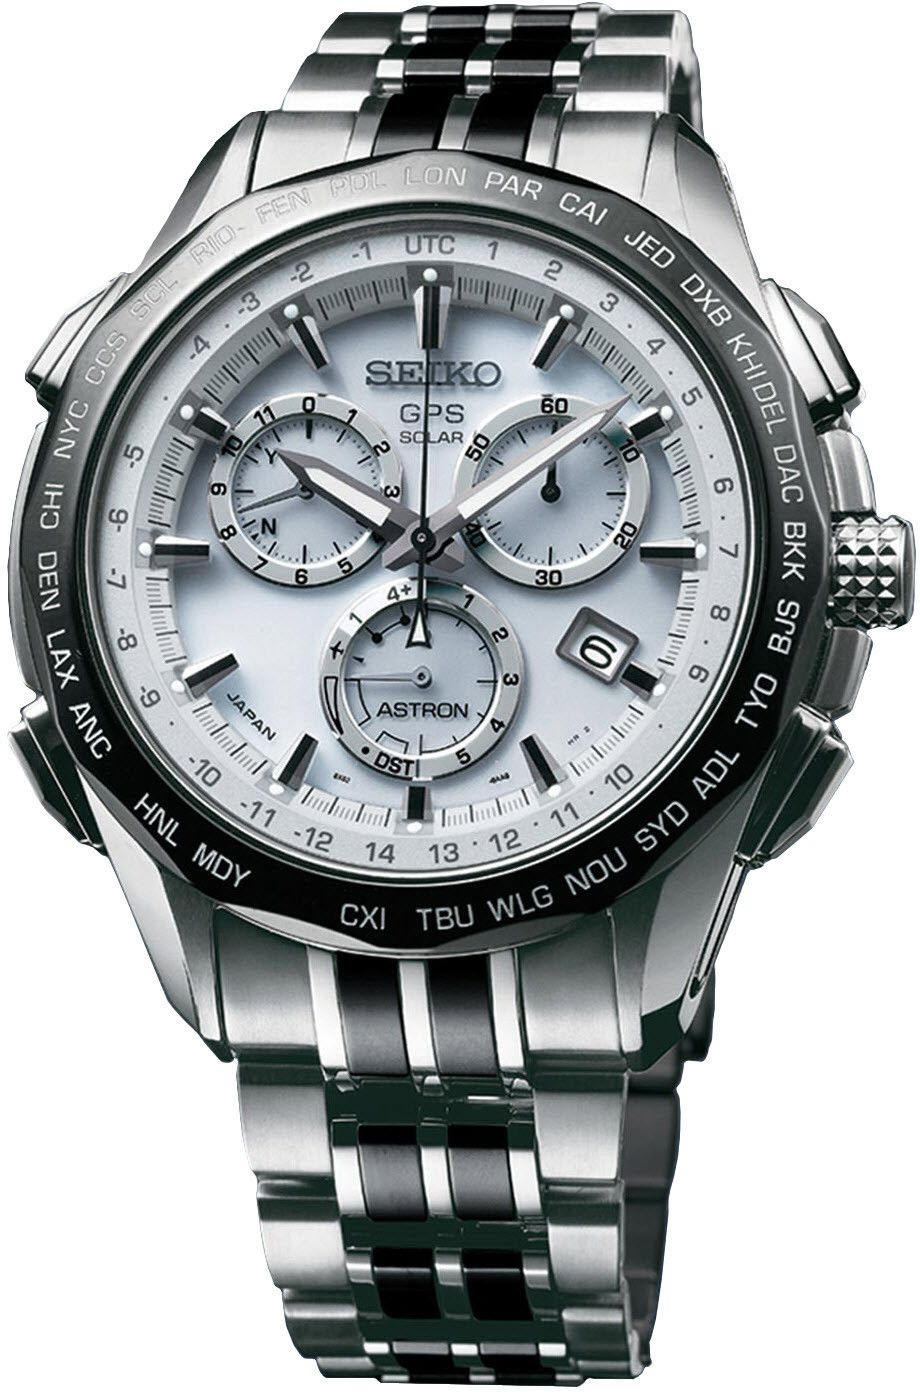 Seiko Astron Seiko Astron Watch Gps Solar Chronograph Limited Edition Watches